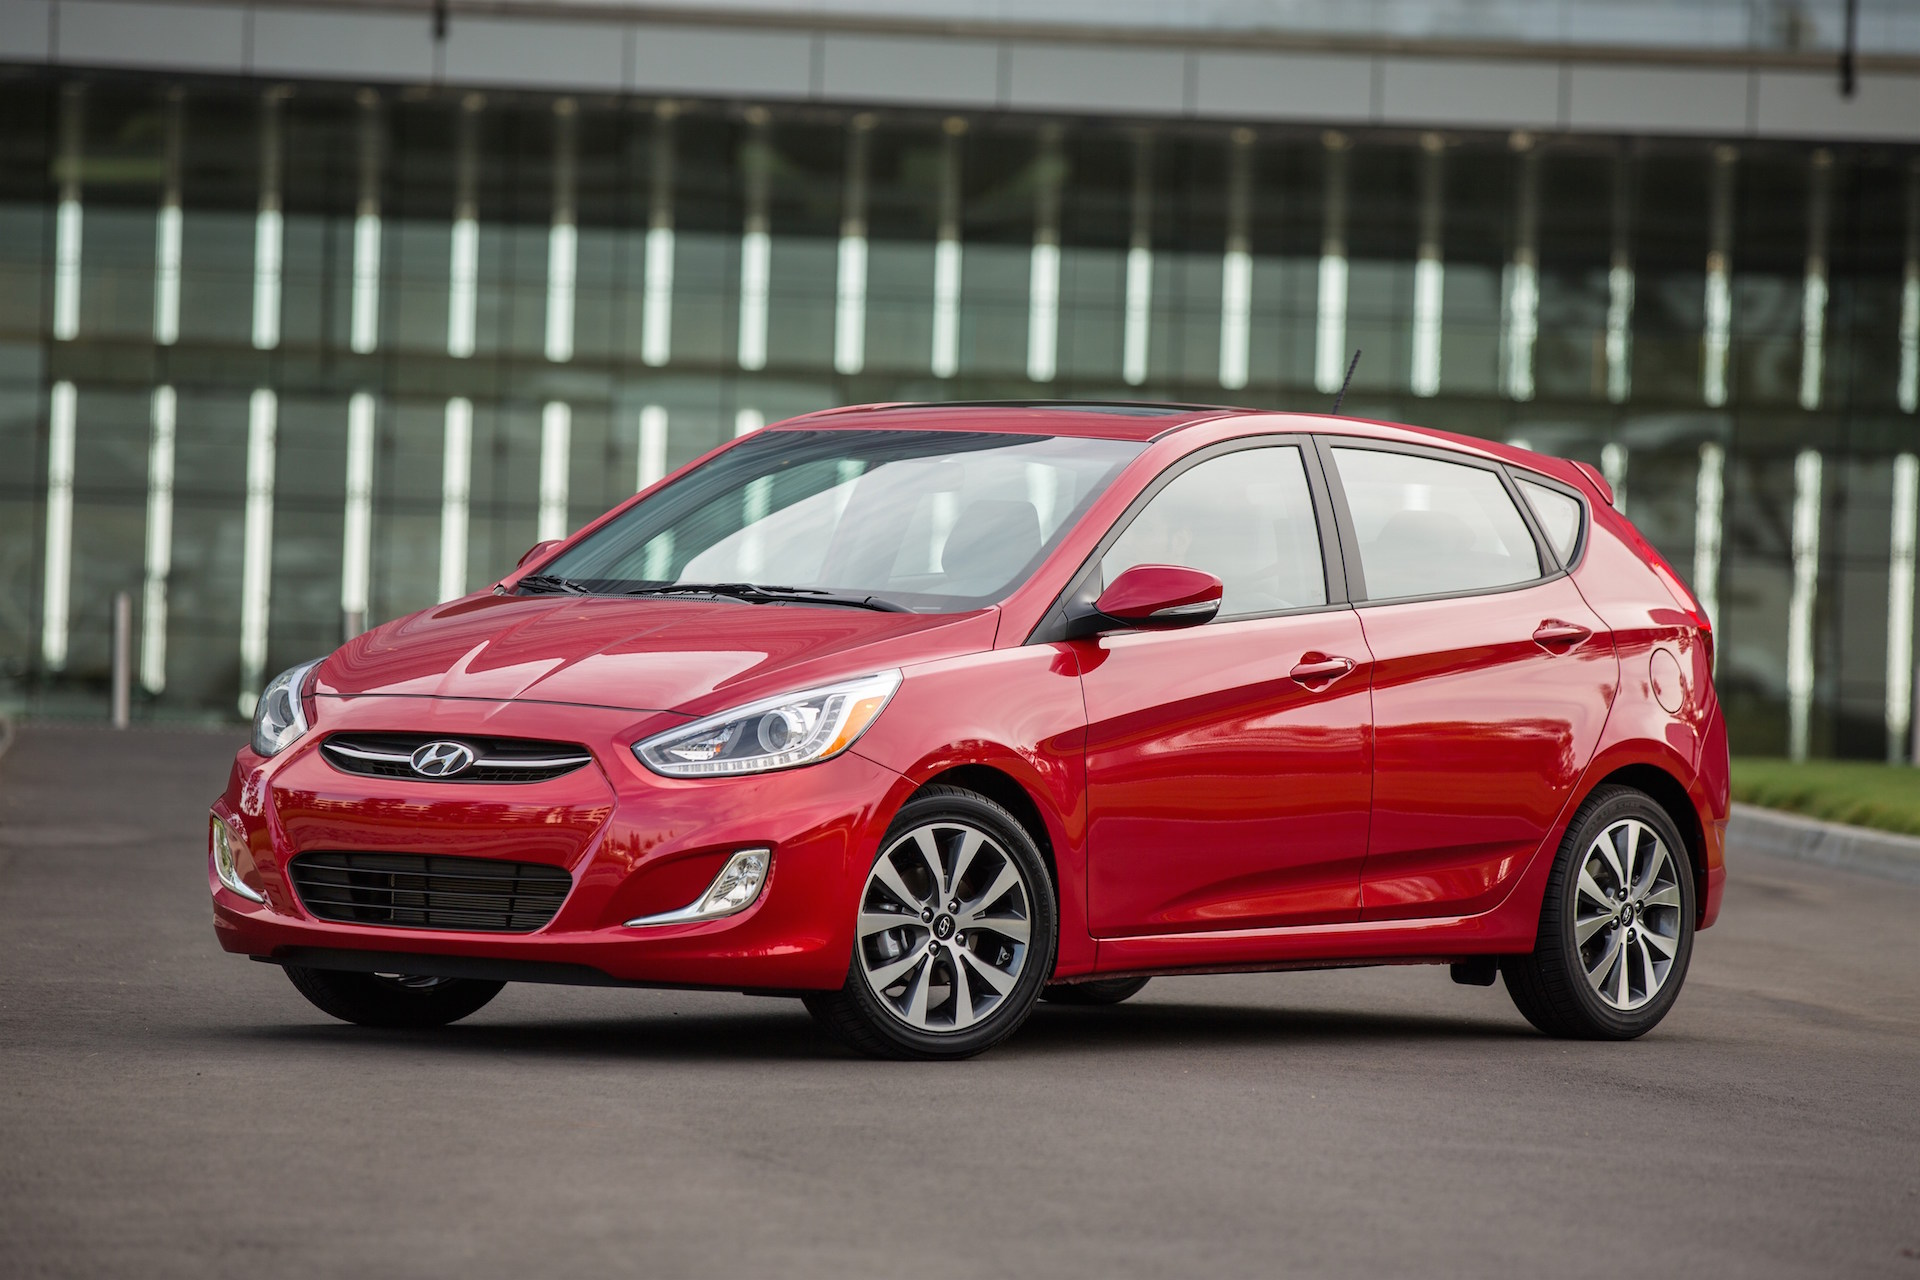 Hyundai Accent Mpg >> 2016 Hyundai Accent Review Ratings Specs Prices And